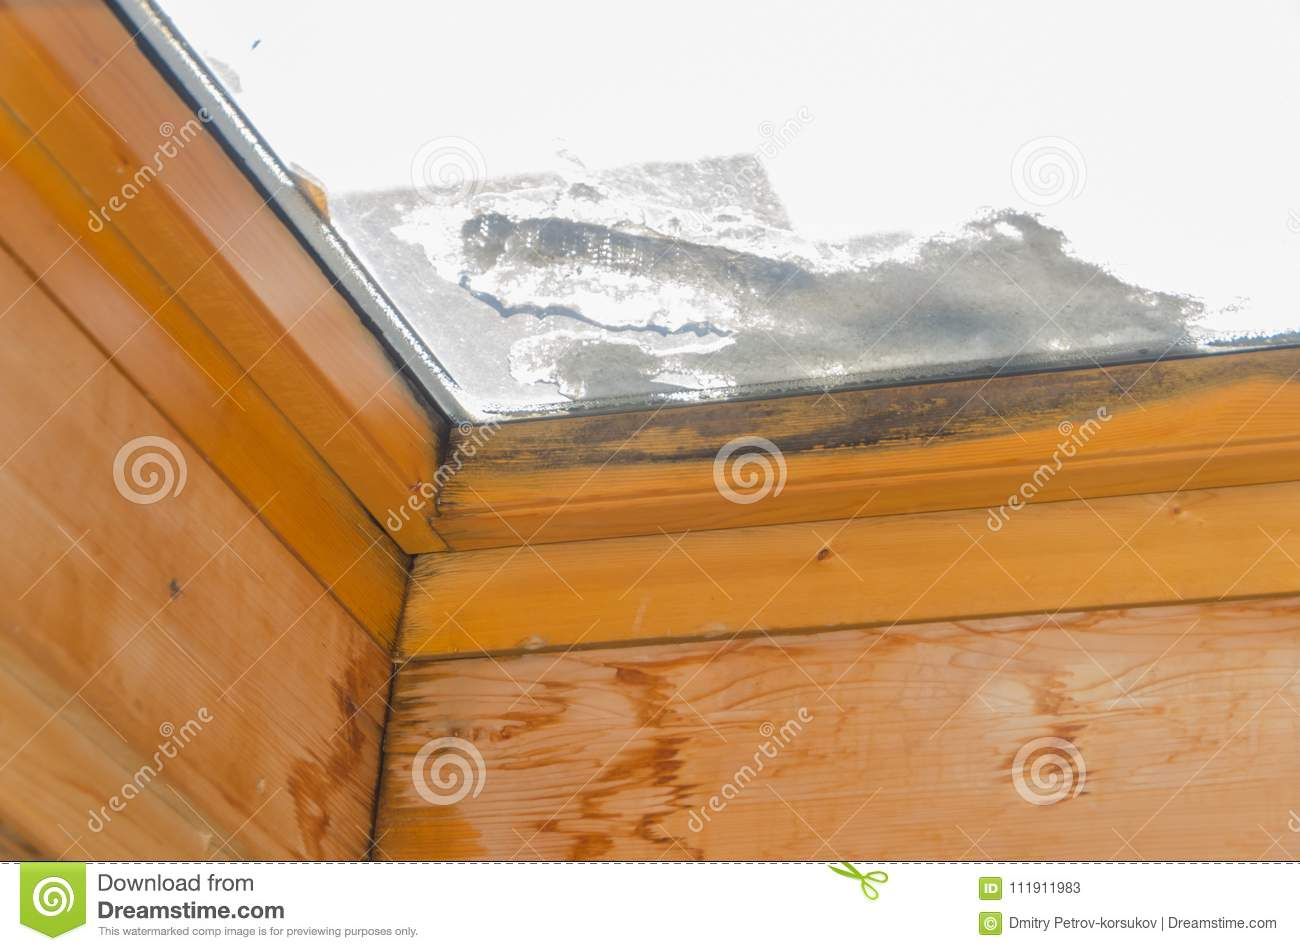 Black Mold On The Window Frame, After The Leak Stock Image - Image ...